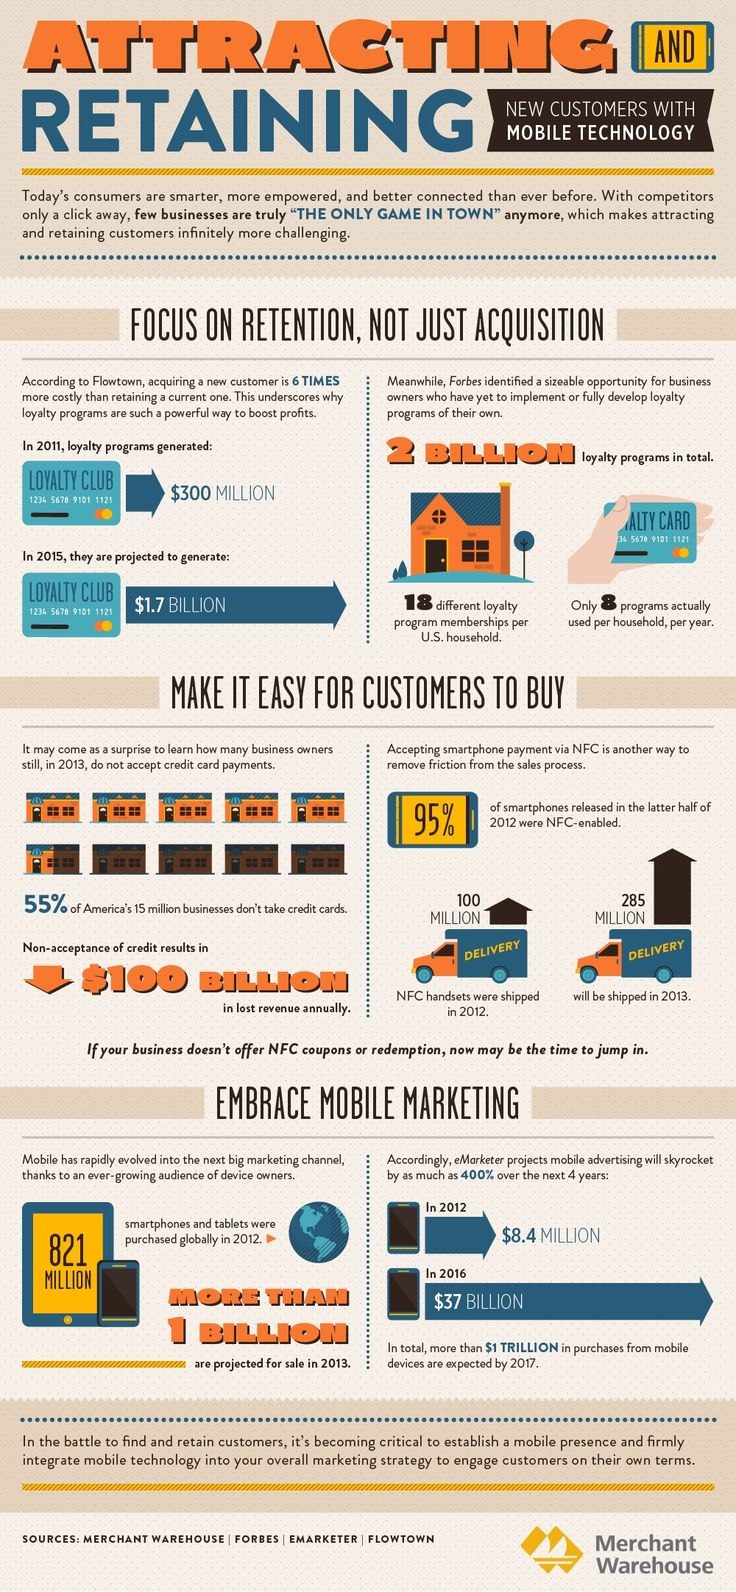 #Infographic: Attracting and Retaining New Customers with #Mobile Technology | by Merchant Warehouse via @Mashable |